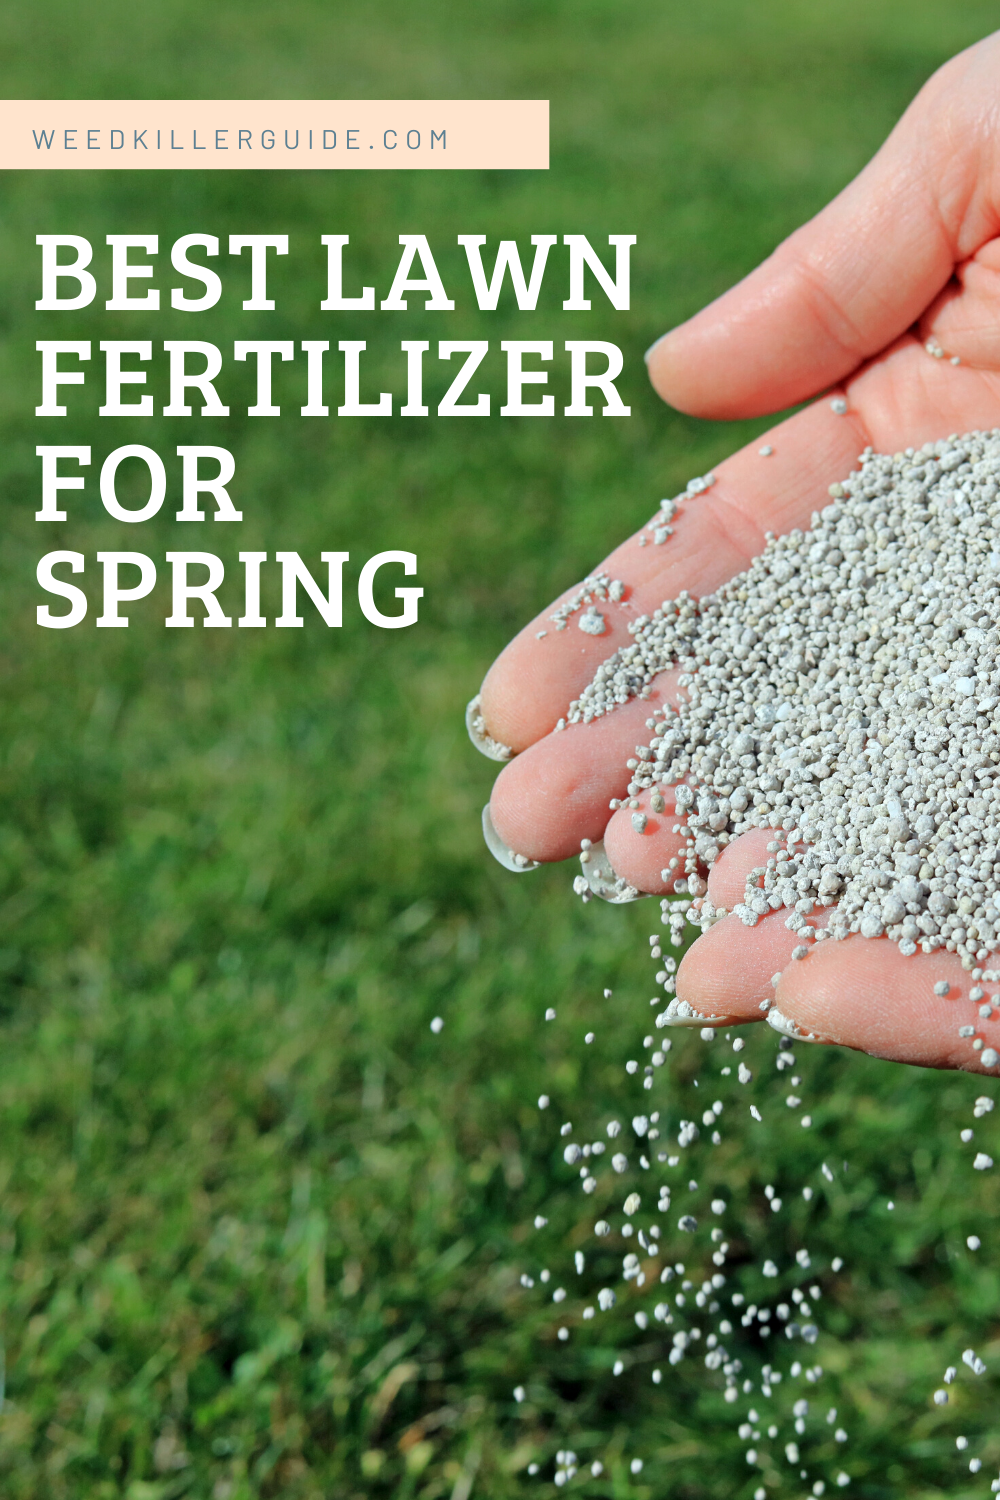 Best Lawn Fertilizer For Spring In 2020 Our Reviews And Comparisons In 2020 Lawn Fertilizer Spring Lawn Fertilizer Scotts Lawn Fertilizer